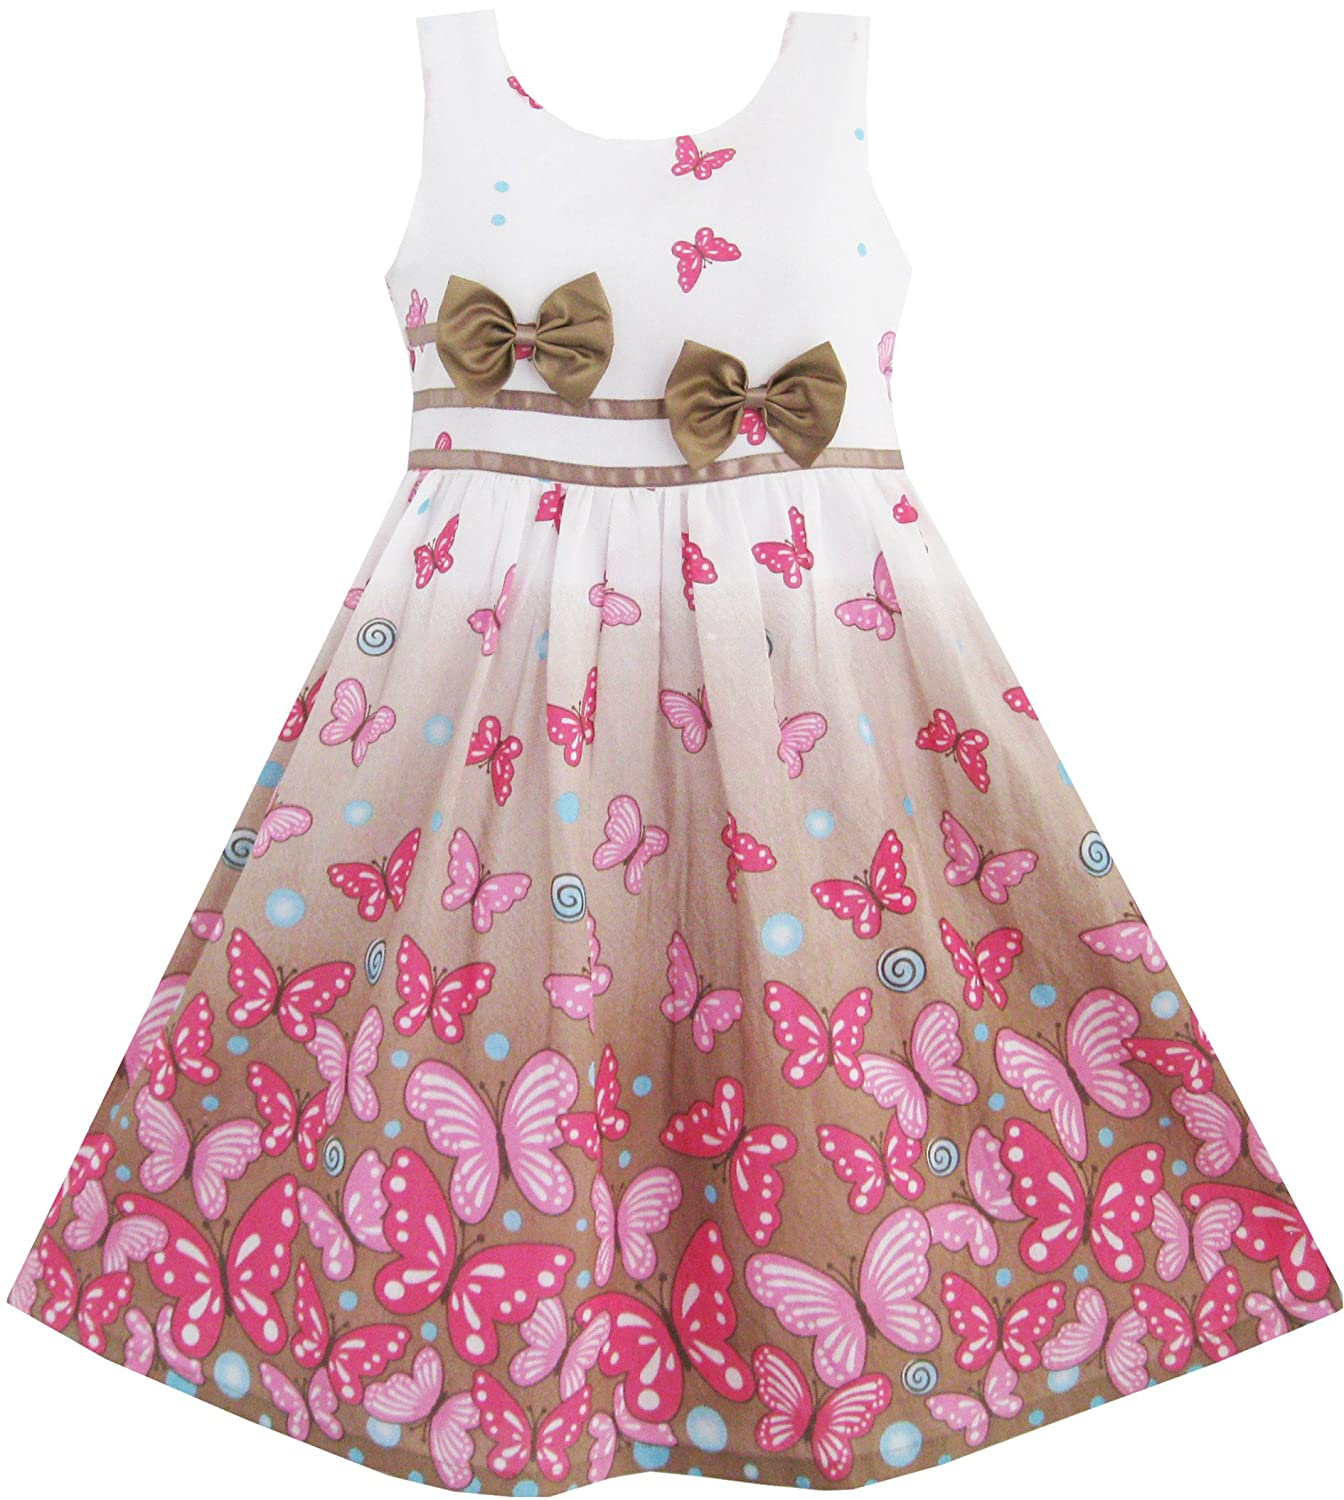 Sunny Fashion Girls Dress Rose Flower Double Bow Tie Party Sundress CNUS0DZ91-P